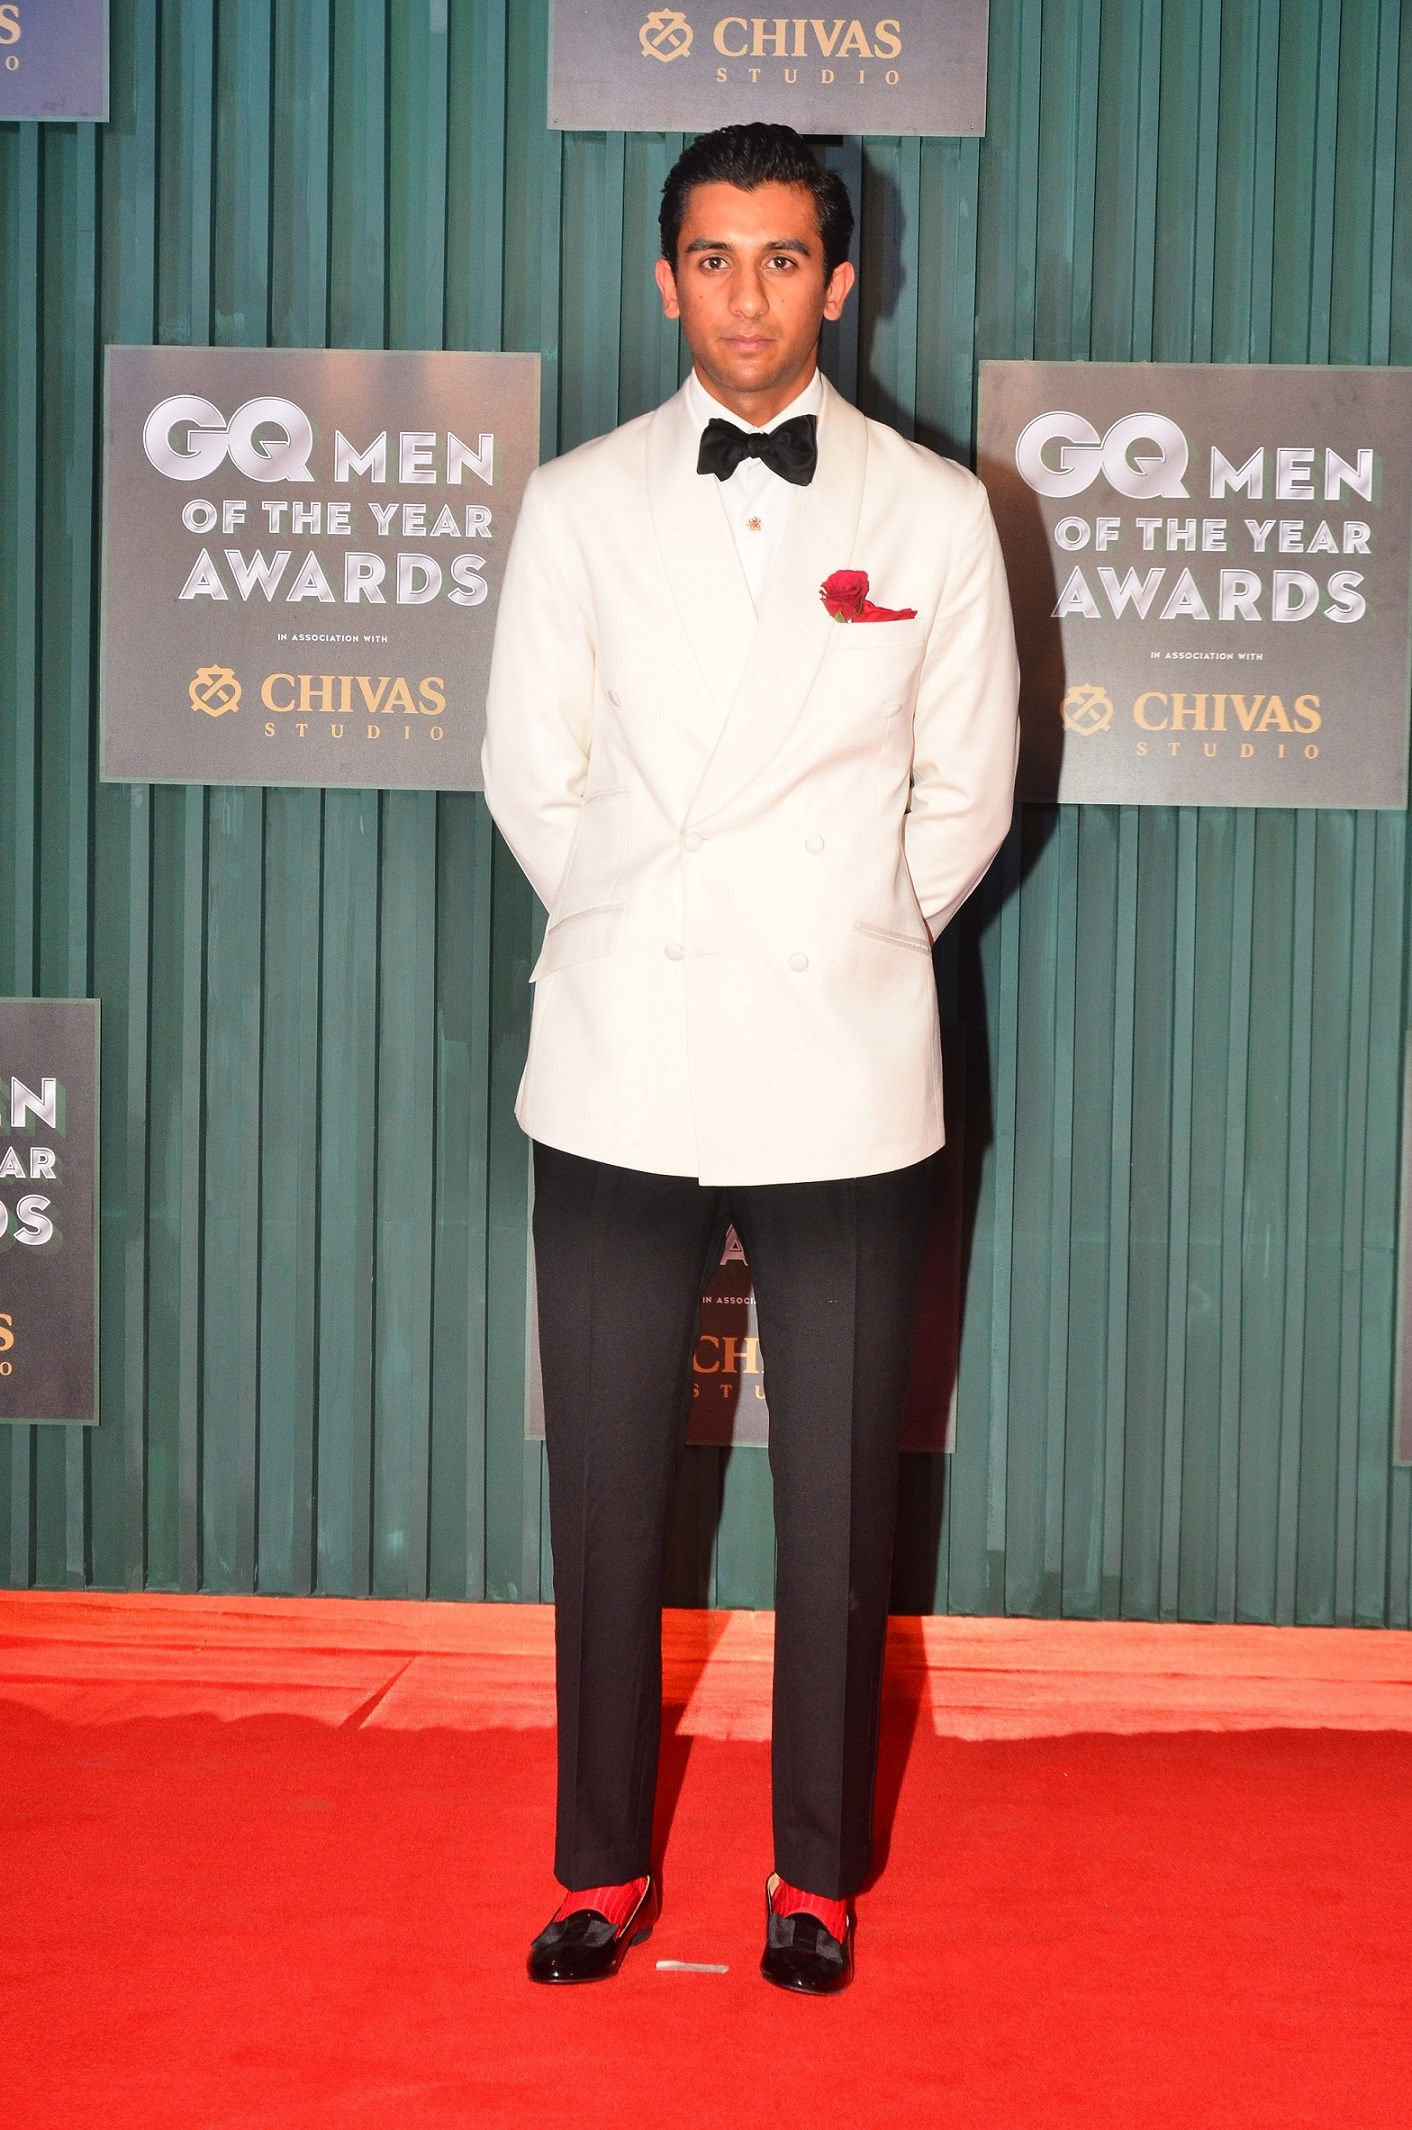 Winner - Most Stylish, Padmanabh Singh at the GQ Men of The Year Awards 2018